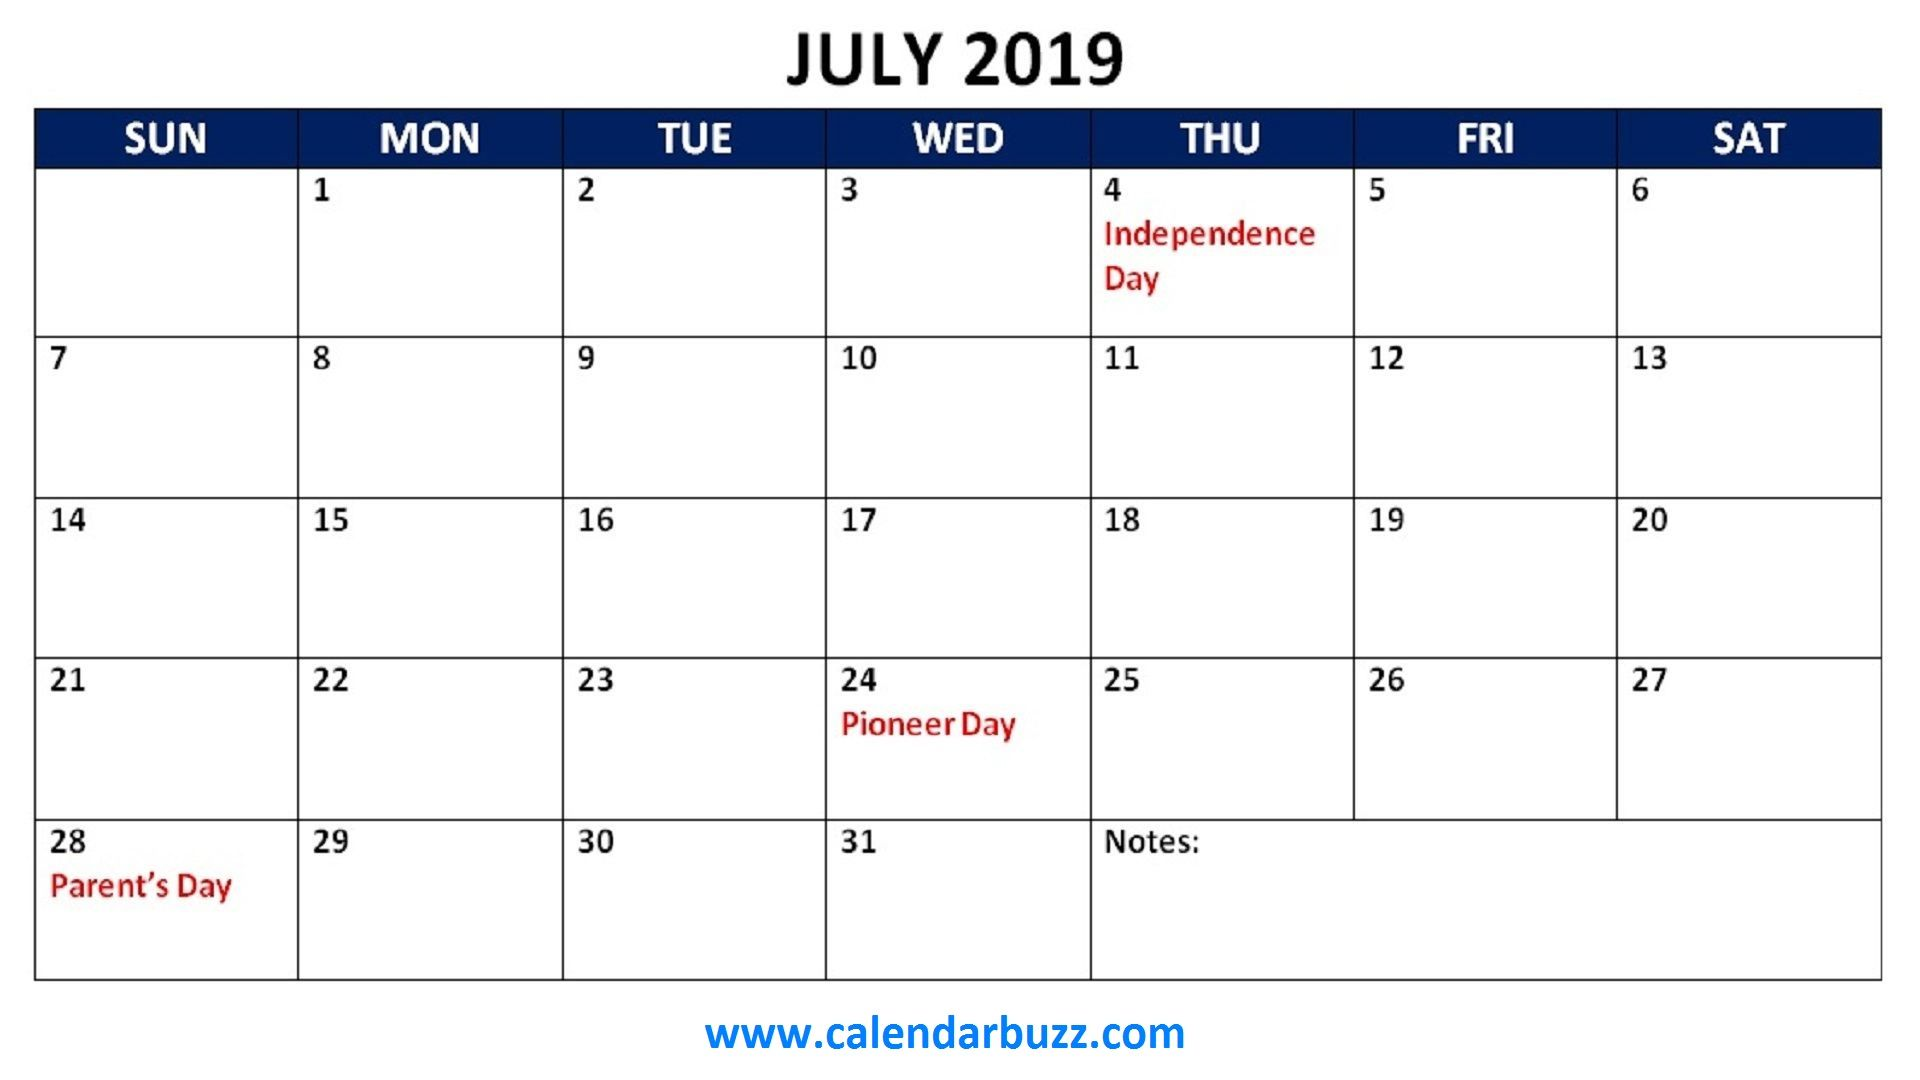 June 2019 Calendar With Holidays July 2019 Calendar with Holidays   Free March 2019 Calendar